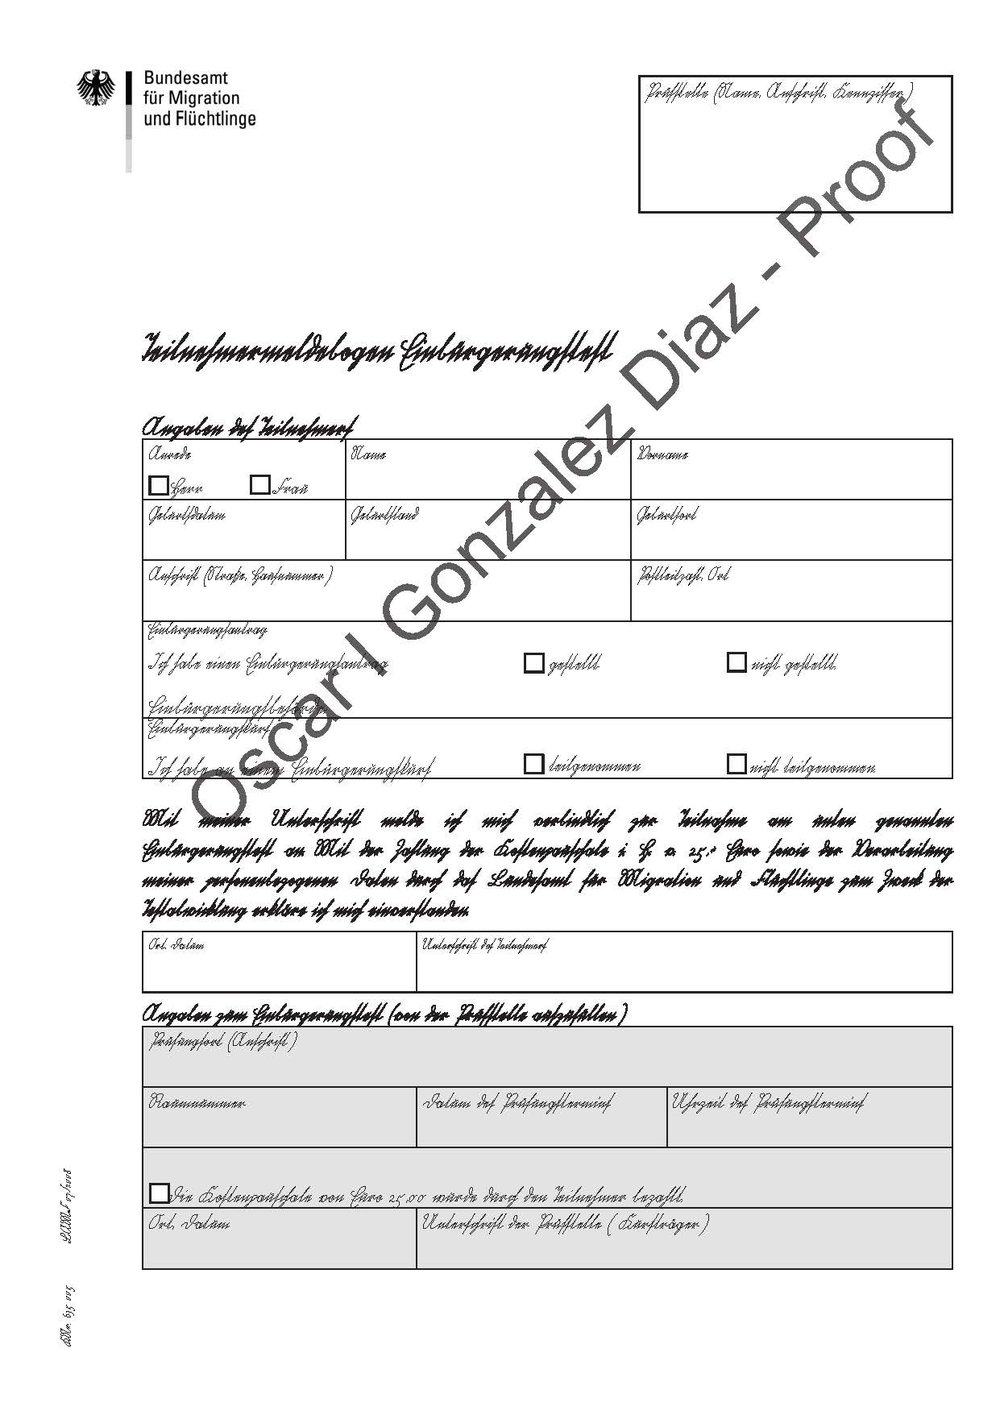 Wiegel_Kurrent_teilnehmermeldebogen_pdf_635.005_en Candidate's naturalisation test application form – 635.005  .jpg